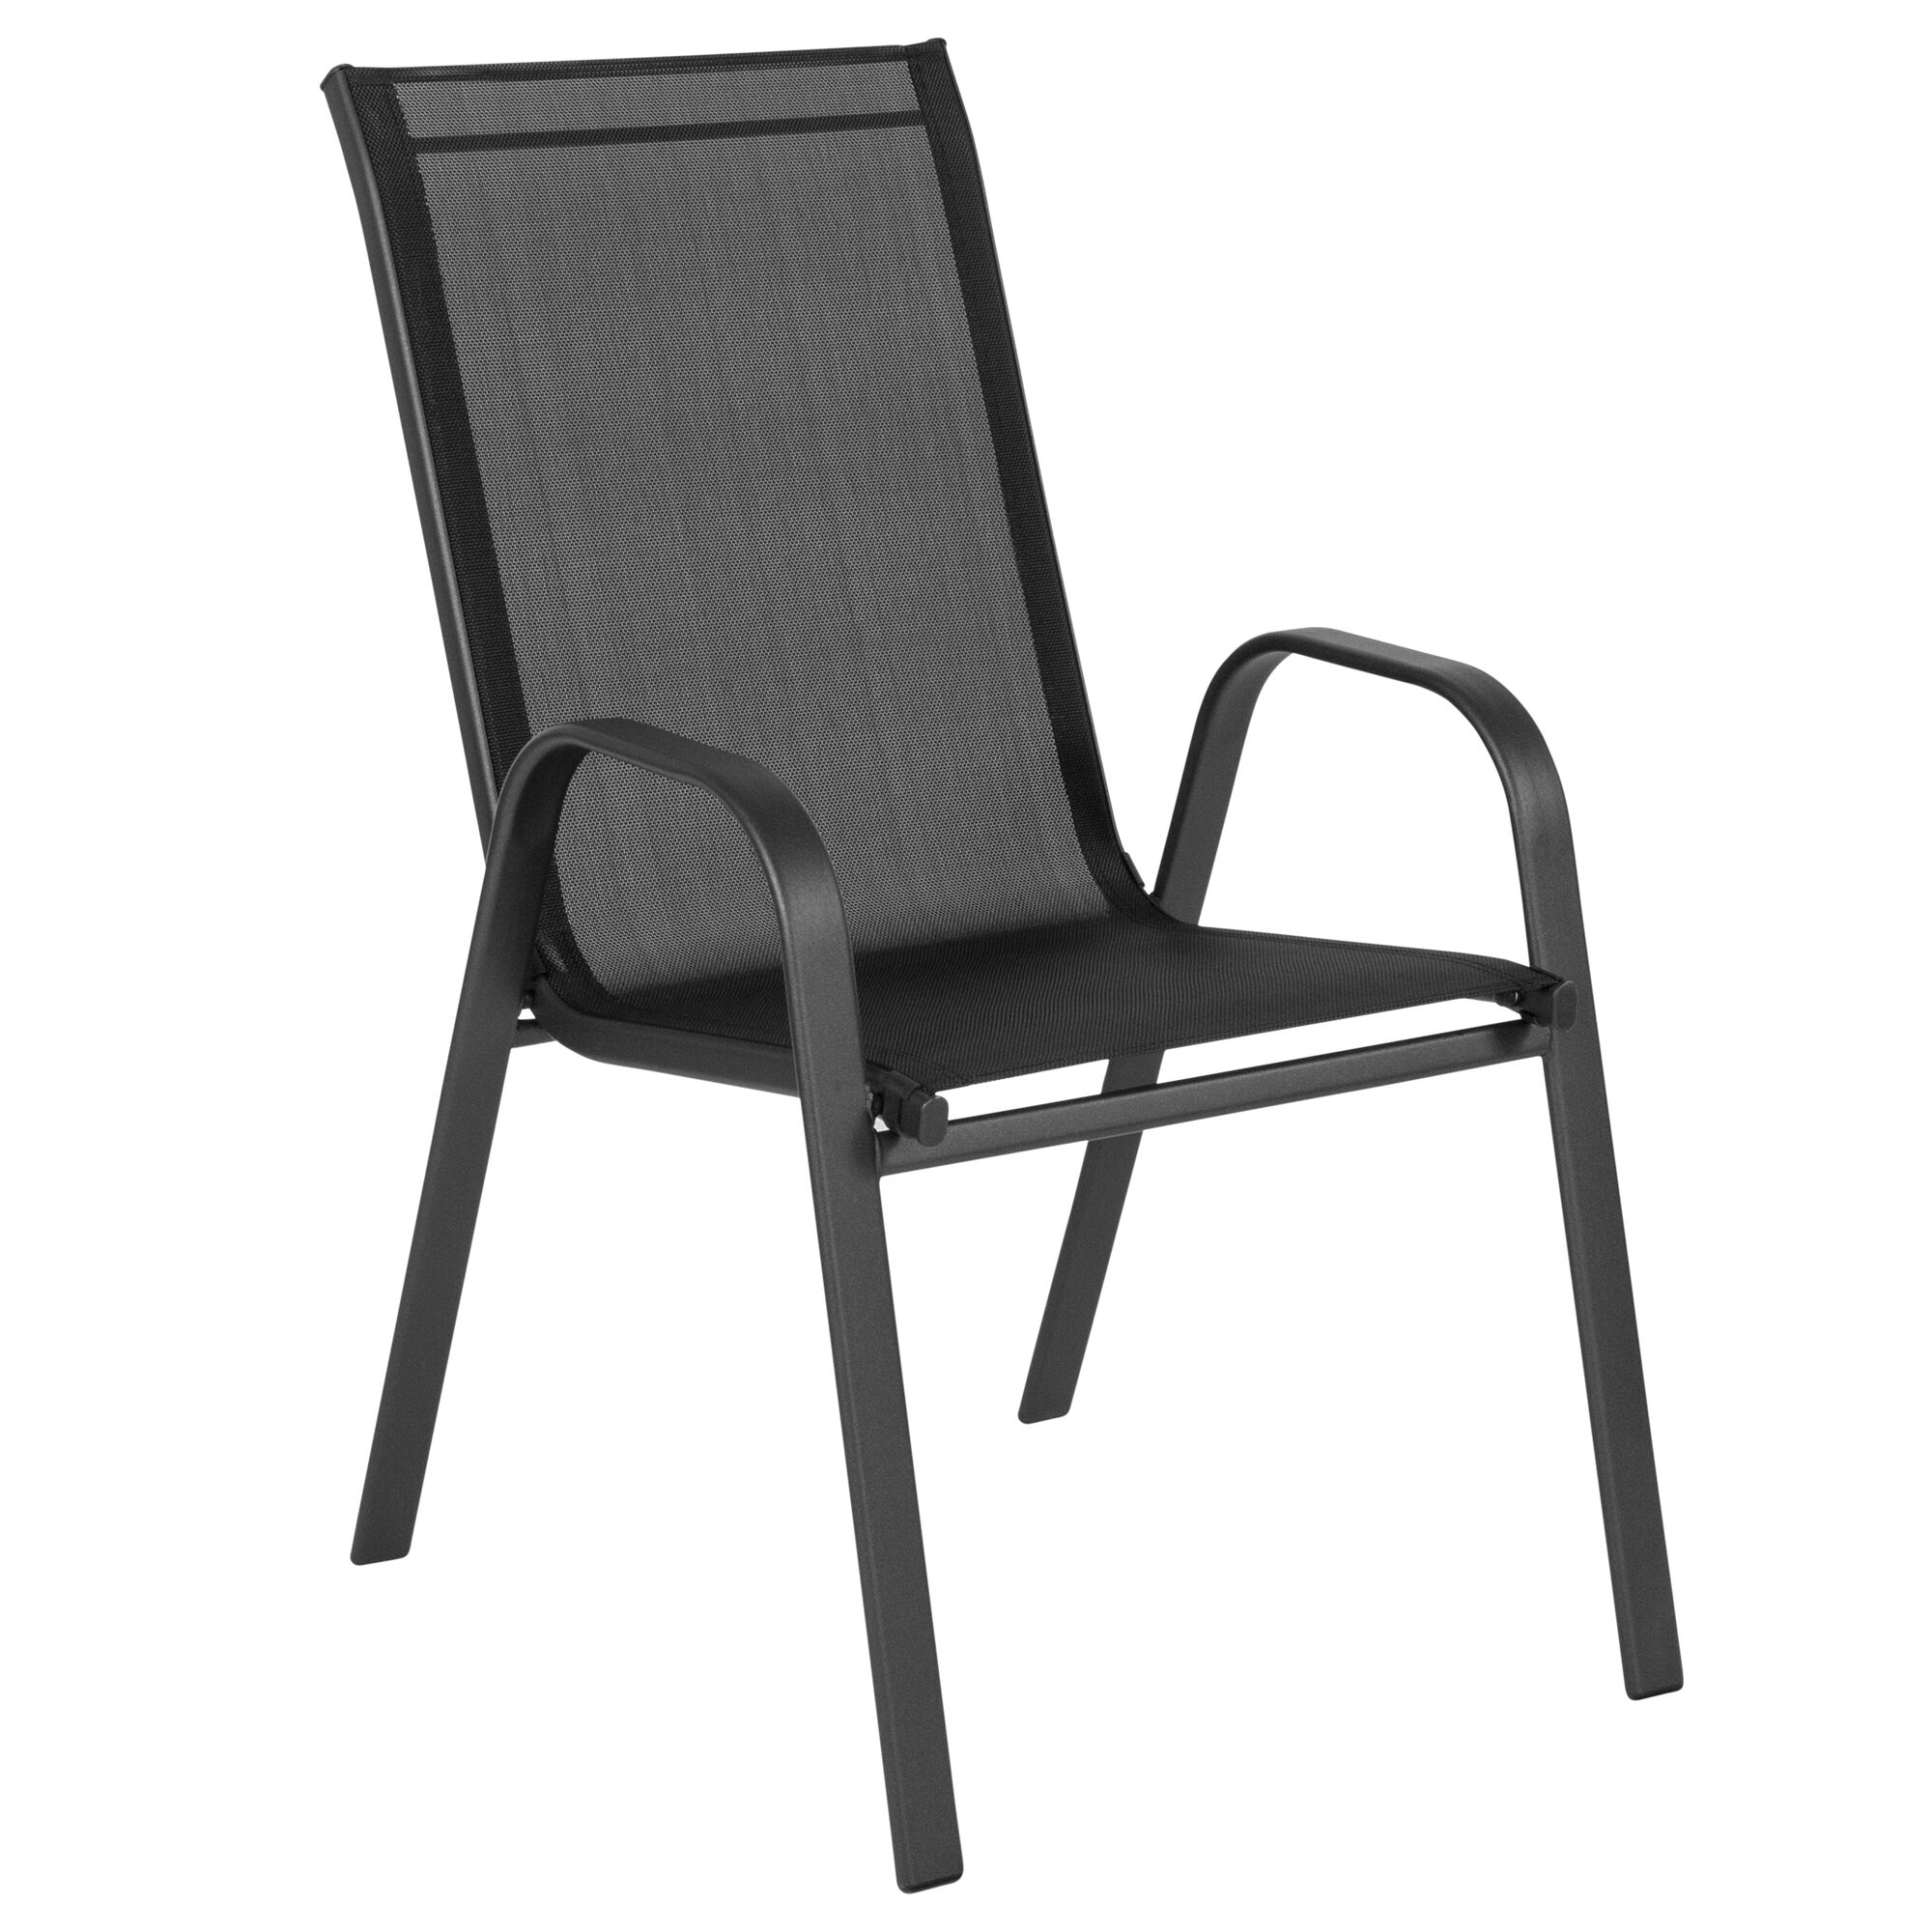 Black Patio Stack Chair Jj 303c Gg Churchchairs4less Com